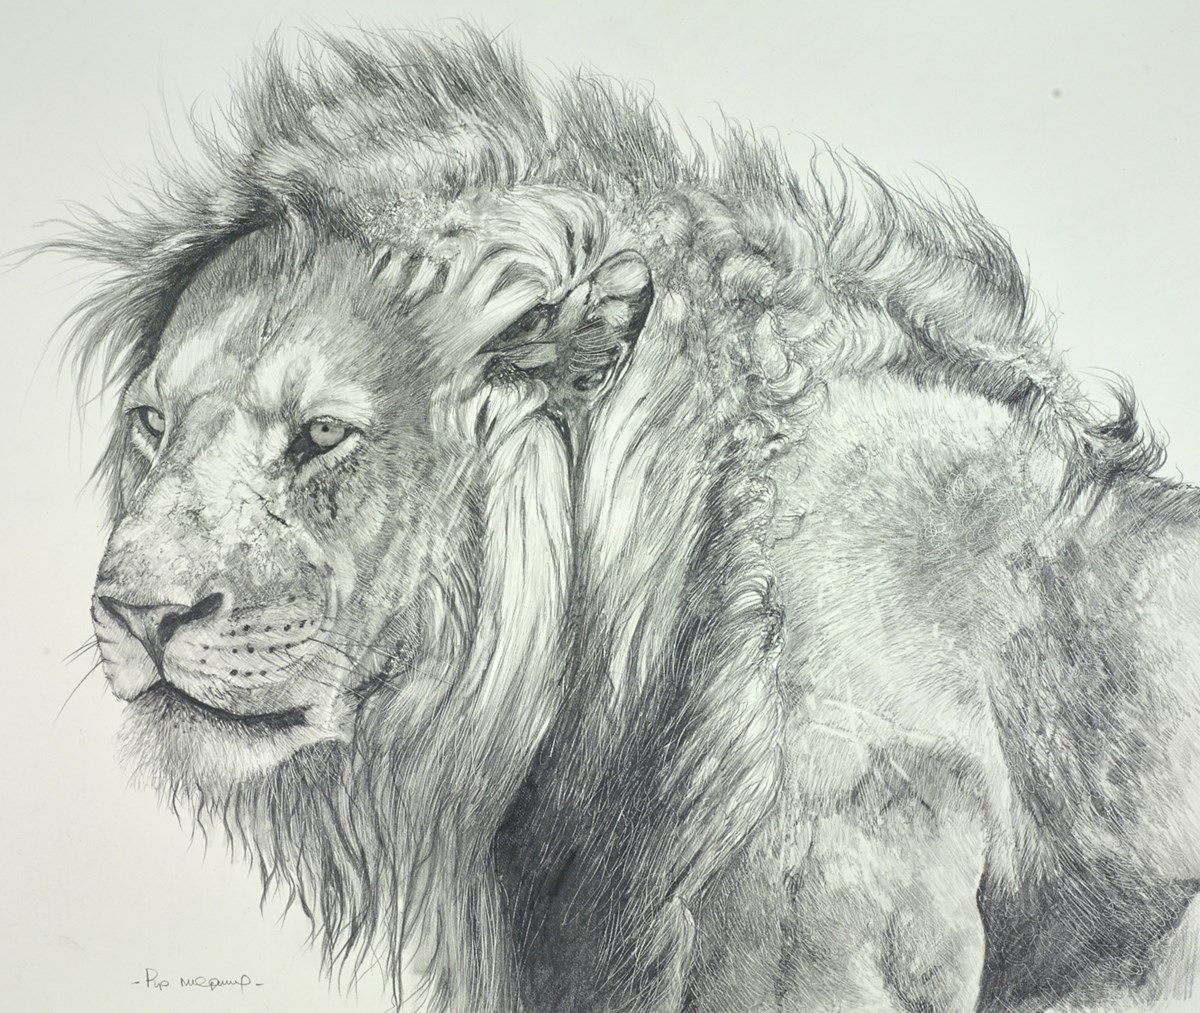 Lion Sketch by pip mcgarry -  sized 19x16 inches. Available from Whitewall Galleries